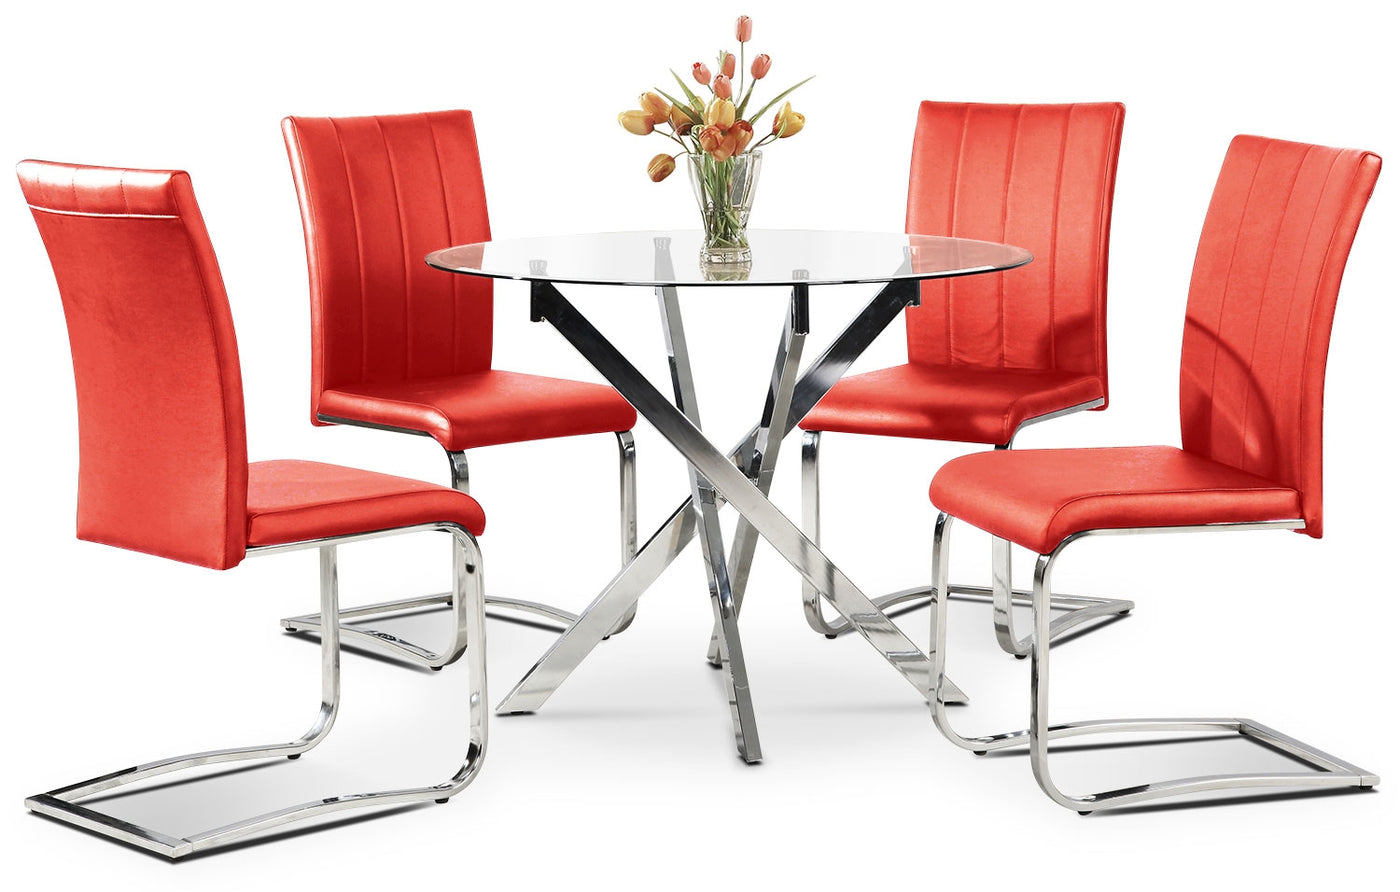 a7c2a5af8688d Tori 5-Piece Dining Package - Red